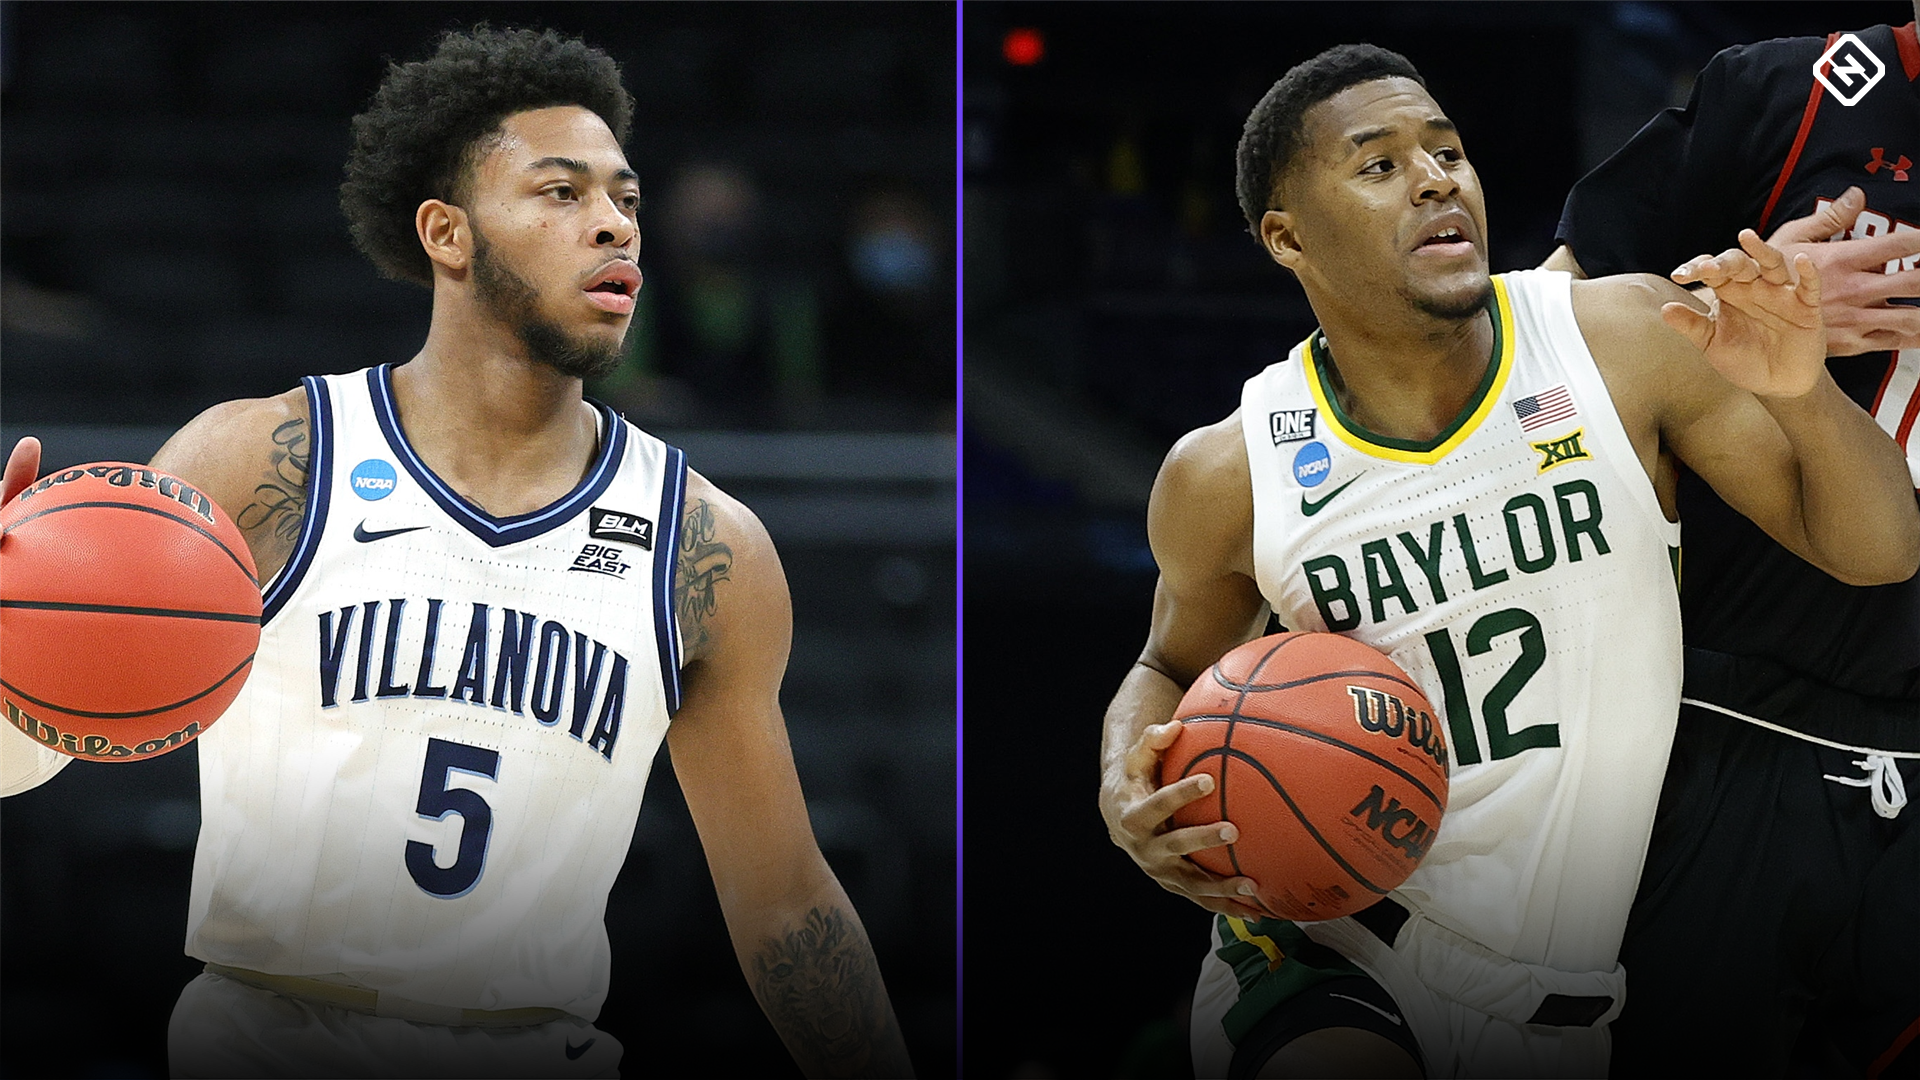 Baylor Vs.  Villanova tests, options, predictions for the March 16 game Madness Sweet